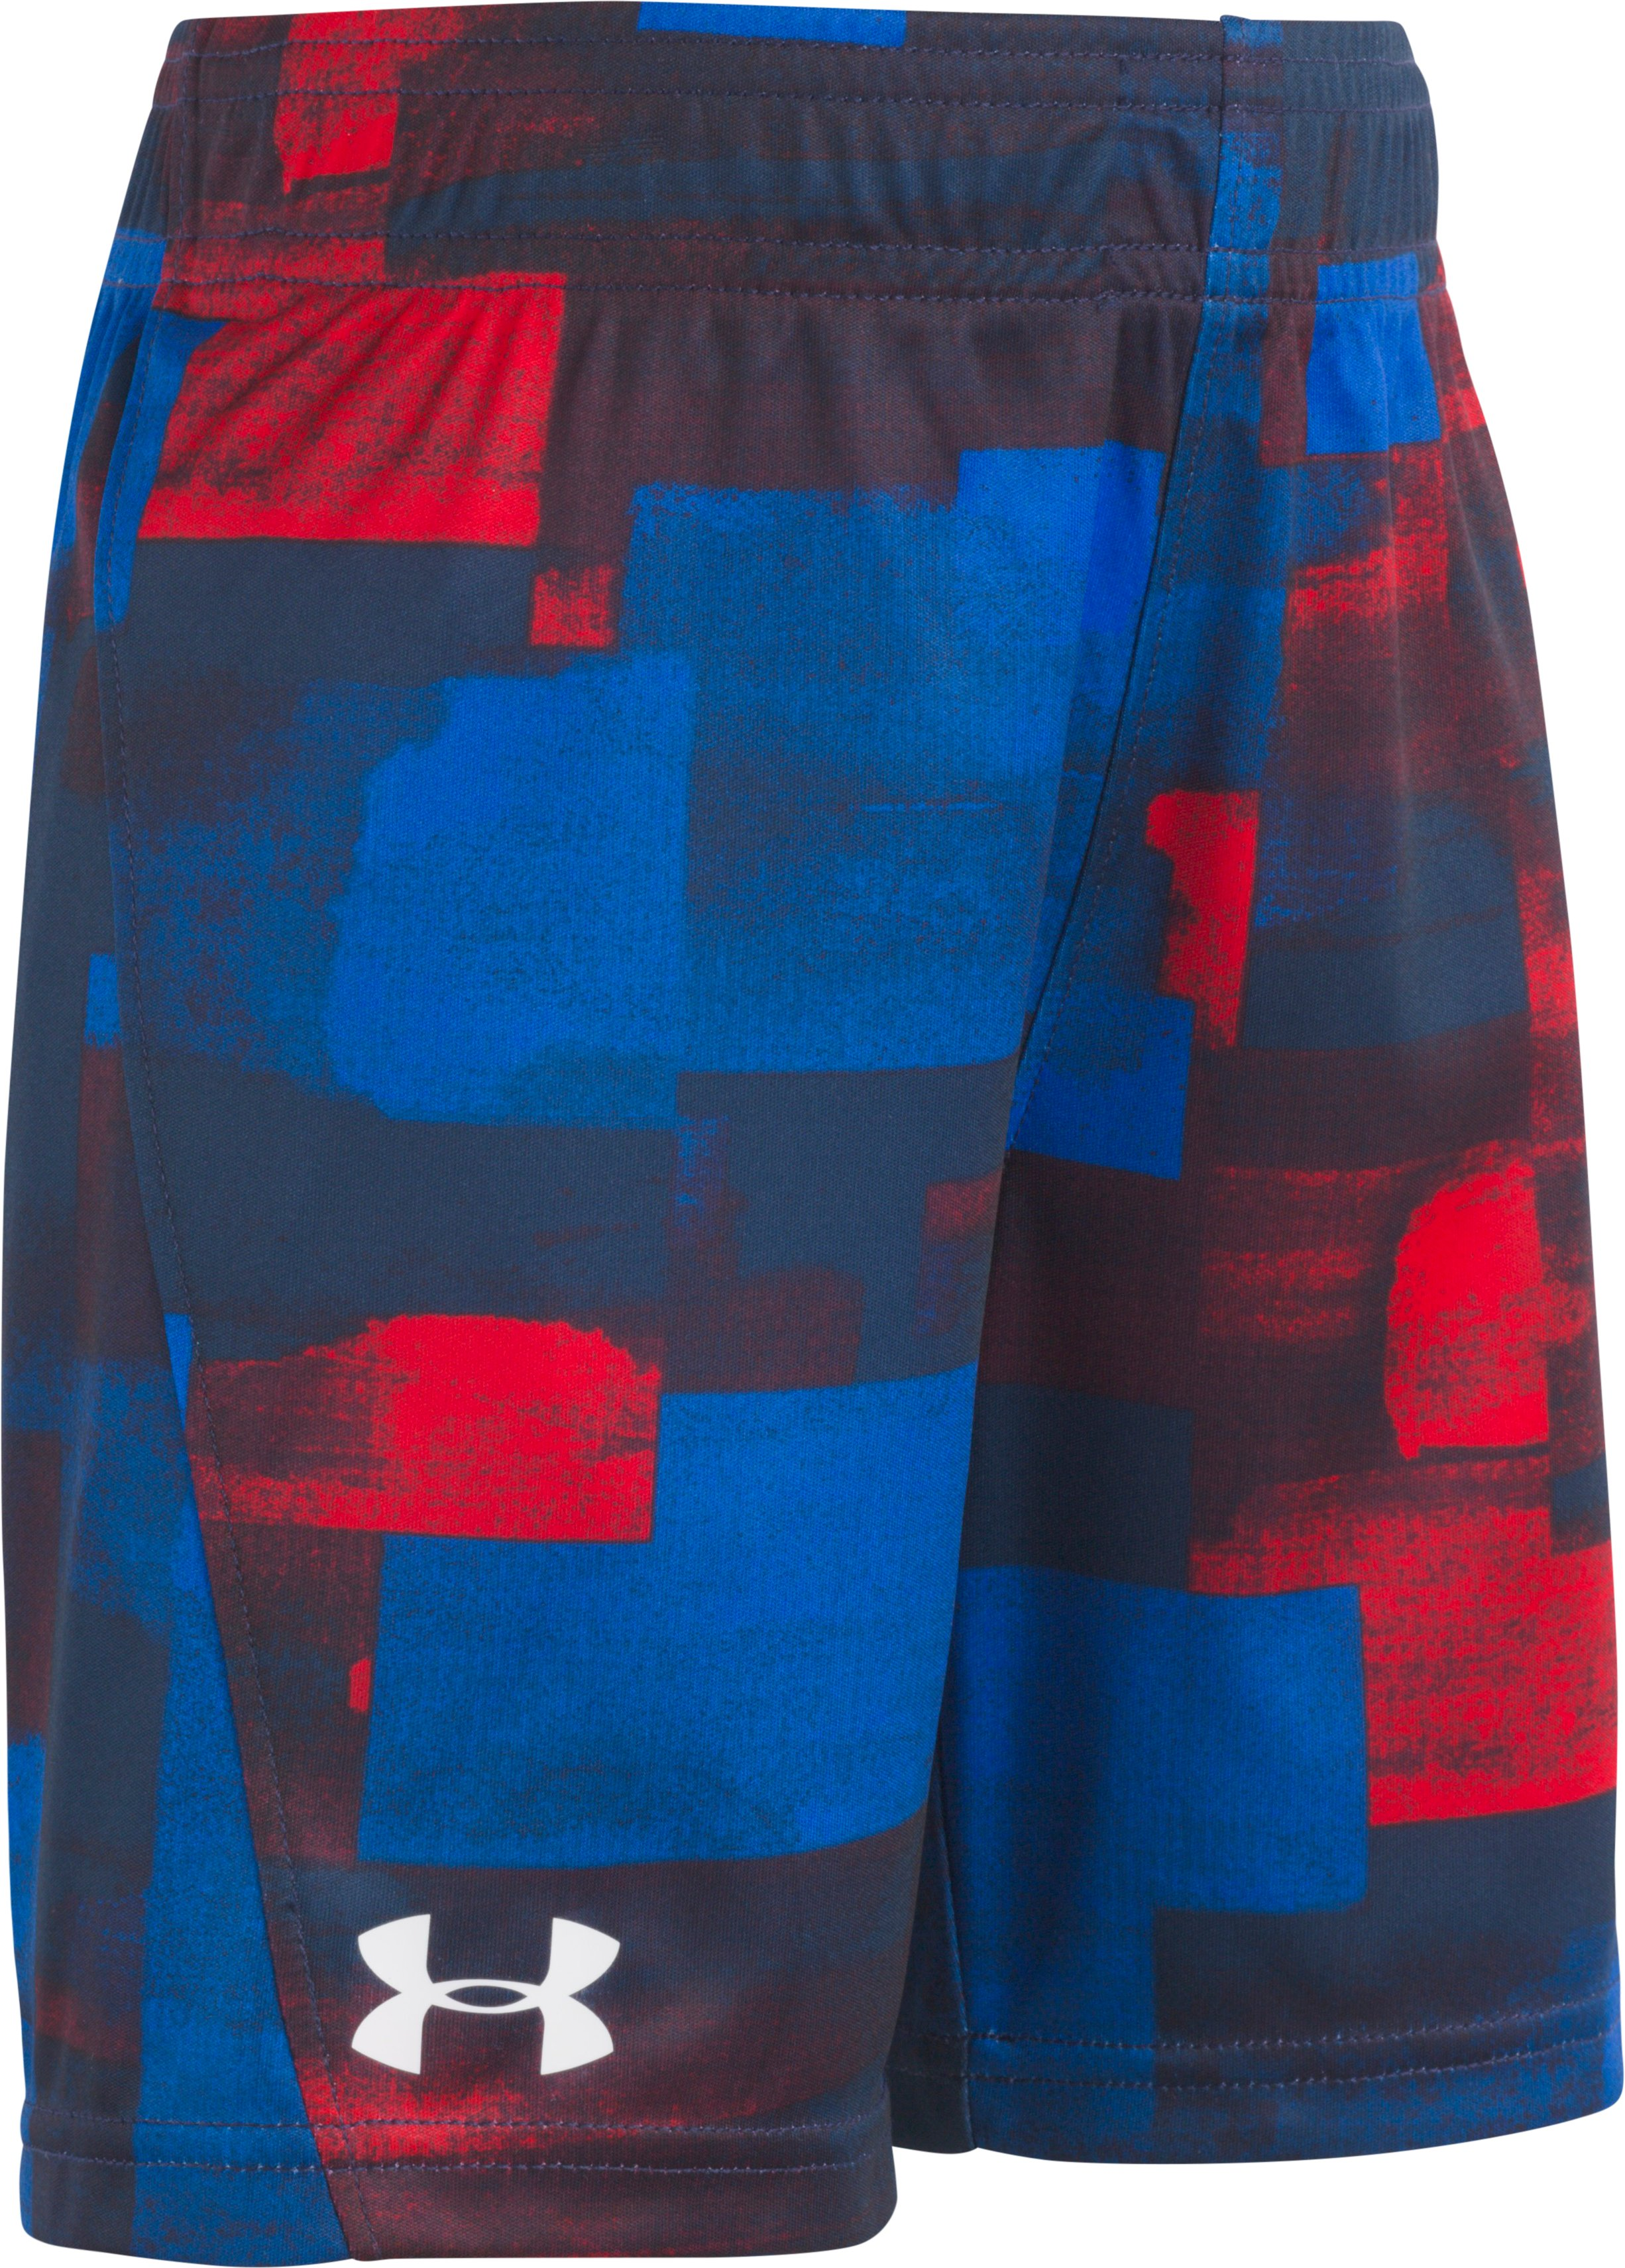 Boys' Toddler UA Water Box Boost Shorts, Academy, zoomed